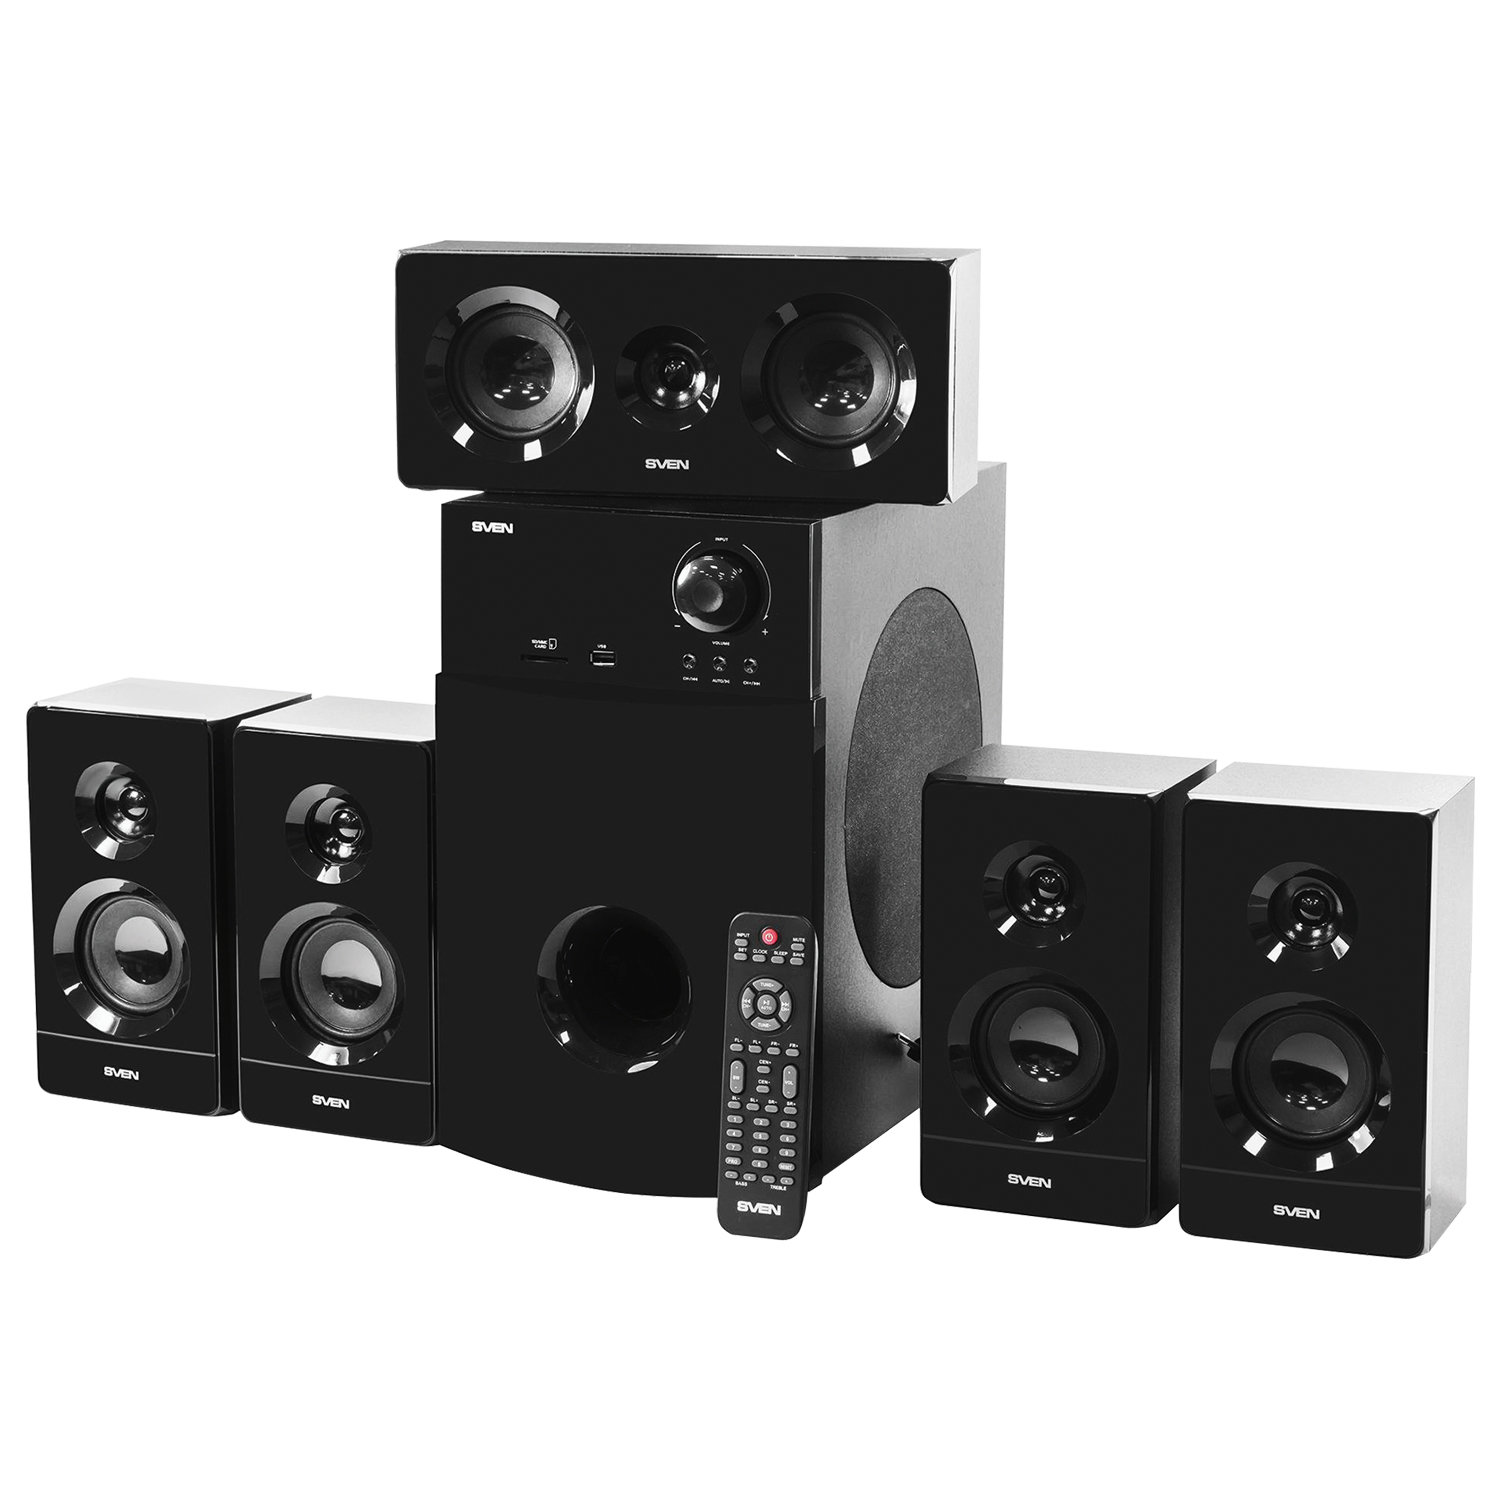 Колонки компьютерные SVEN HT-210, 5.1, 125 Вт, Bluetooth, Optical, Coaxial, FM, дерево, черные, SV-014124